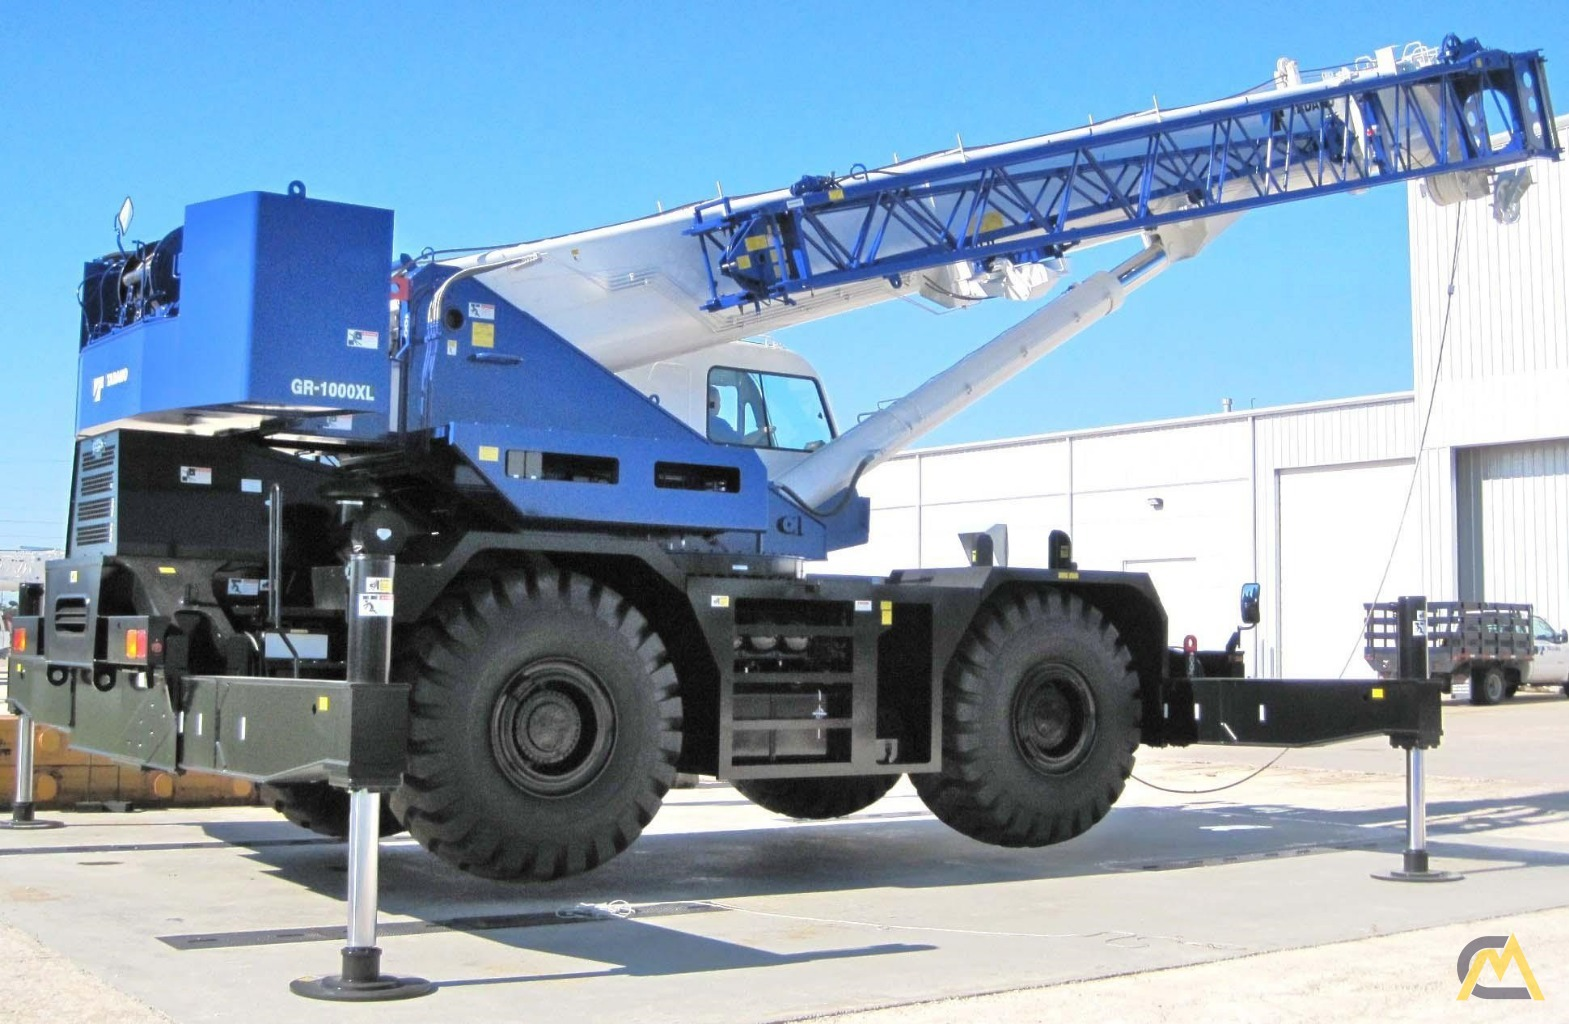 Tadano GR-1000XL-3 100-Ton Rough Terrain Crane For Sale or Rent & Material  Handlers 6972 CraneMarket